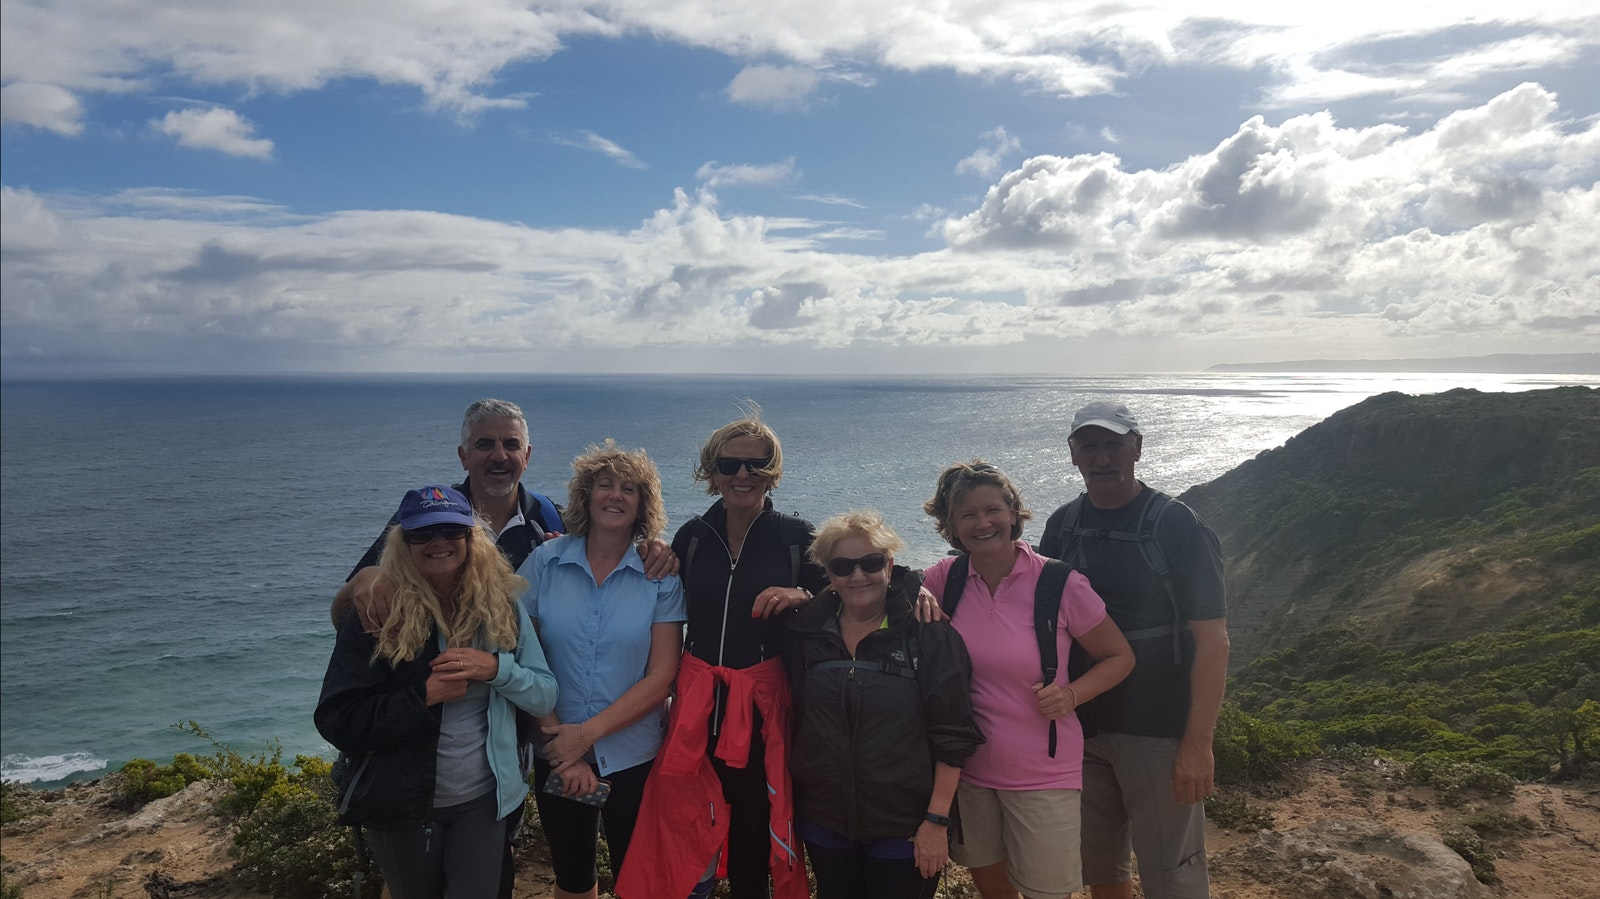 Group shot taken on the Great Ocean Walk near Aire River